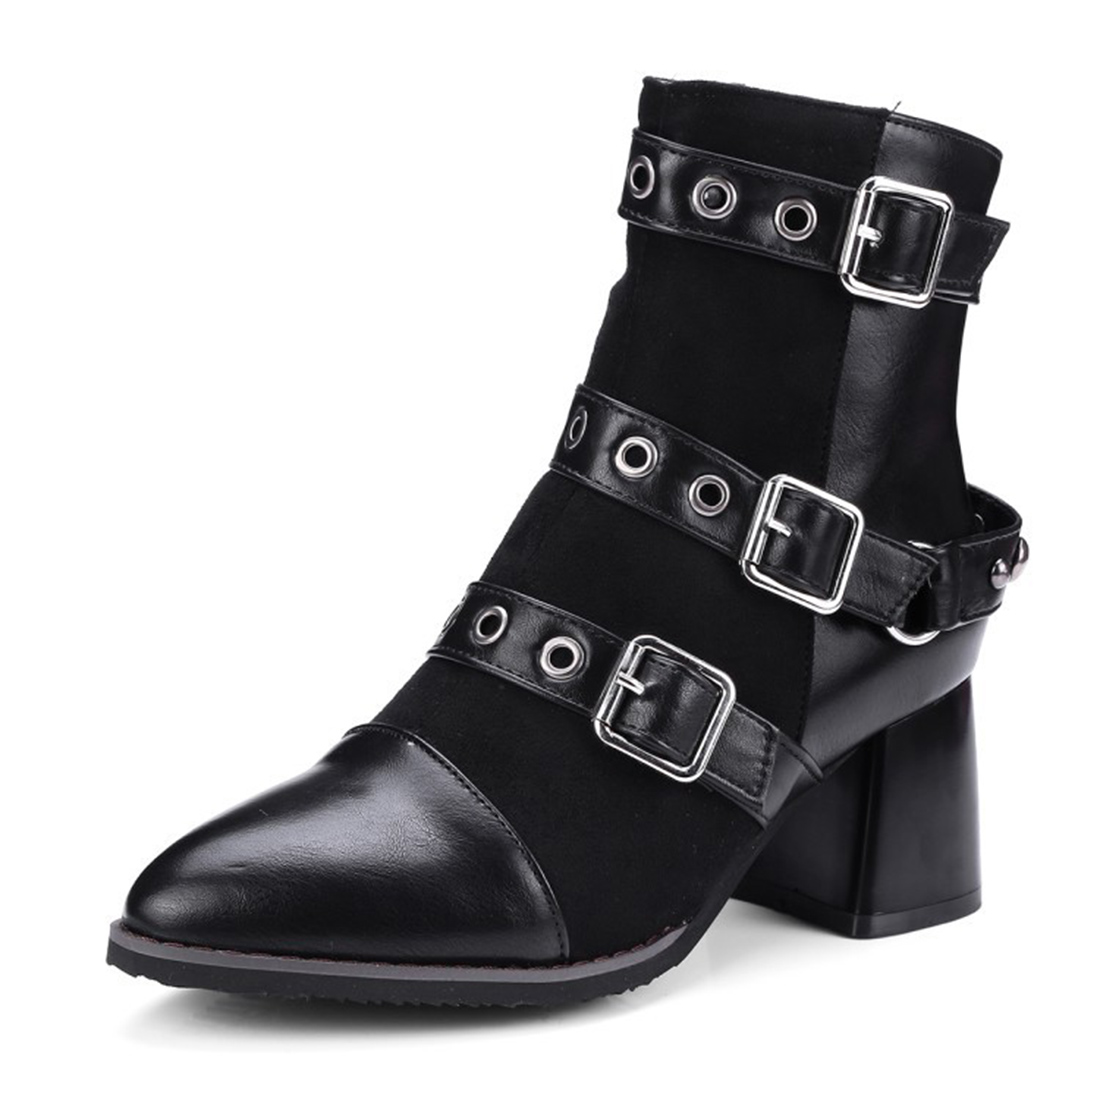 Boots women Fashion Miliatry Punk Goth Rivets Belt Buckle Ankle Boots Pointed Toe Shoes Women Big PLus Size 43 odetina new fashion women metal buckle ankle boots pointed toe gothic punk style motorcycle boots winter shoes black big size 48